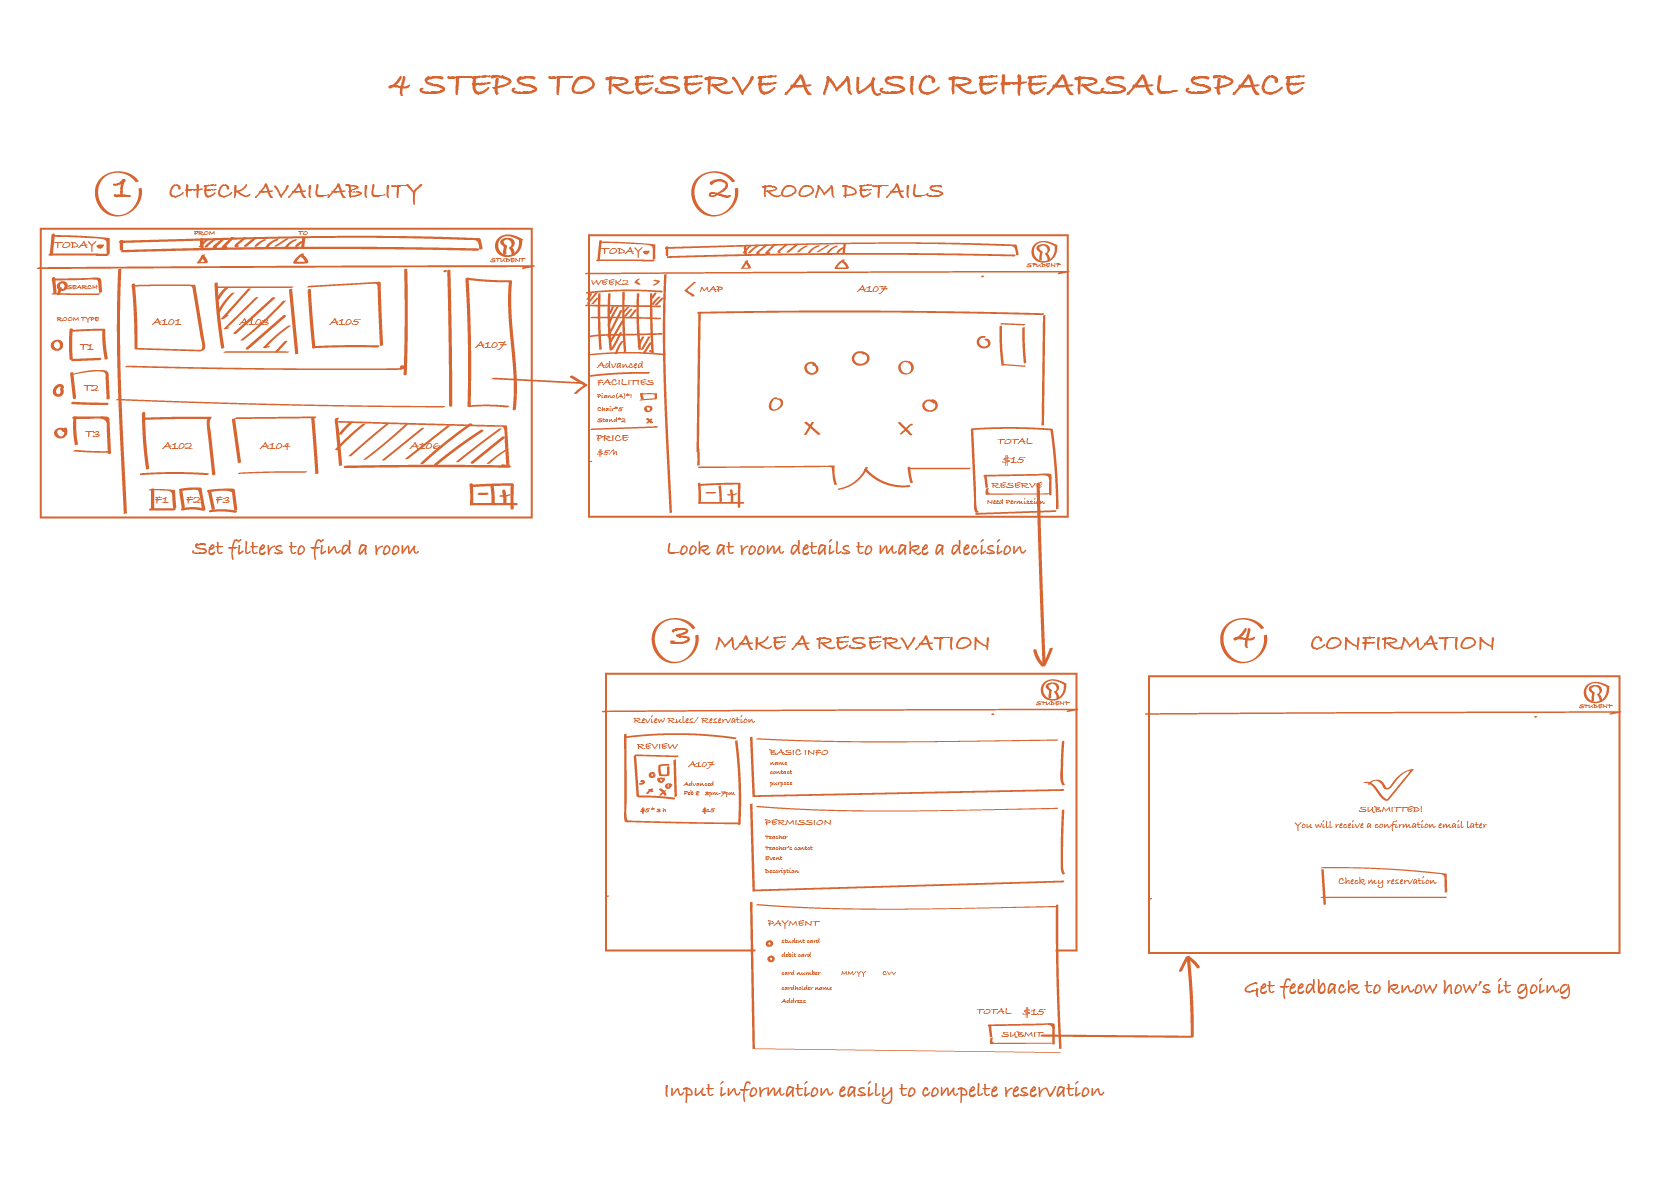 4 STEPS-14.png